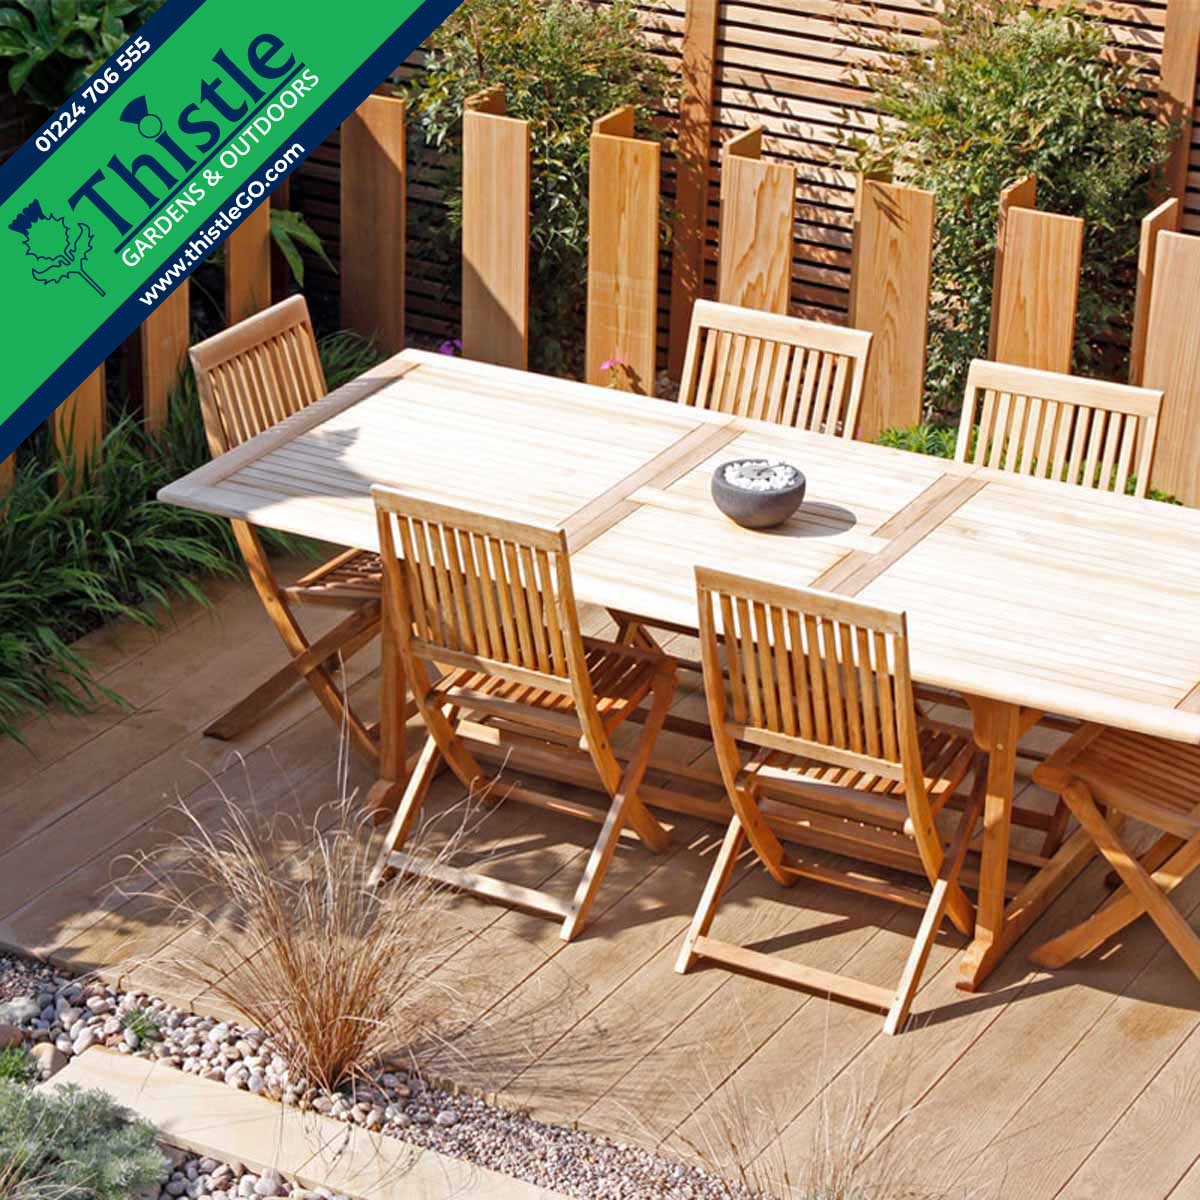 Enhanced Grain Composite Decking in Golden Oak